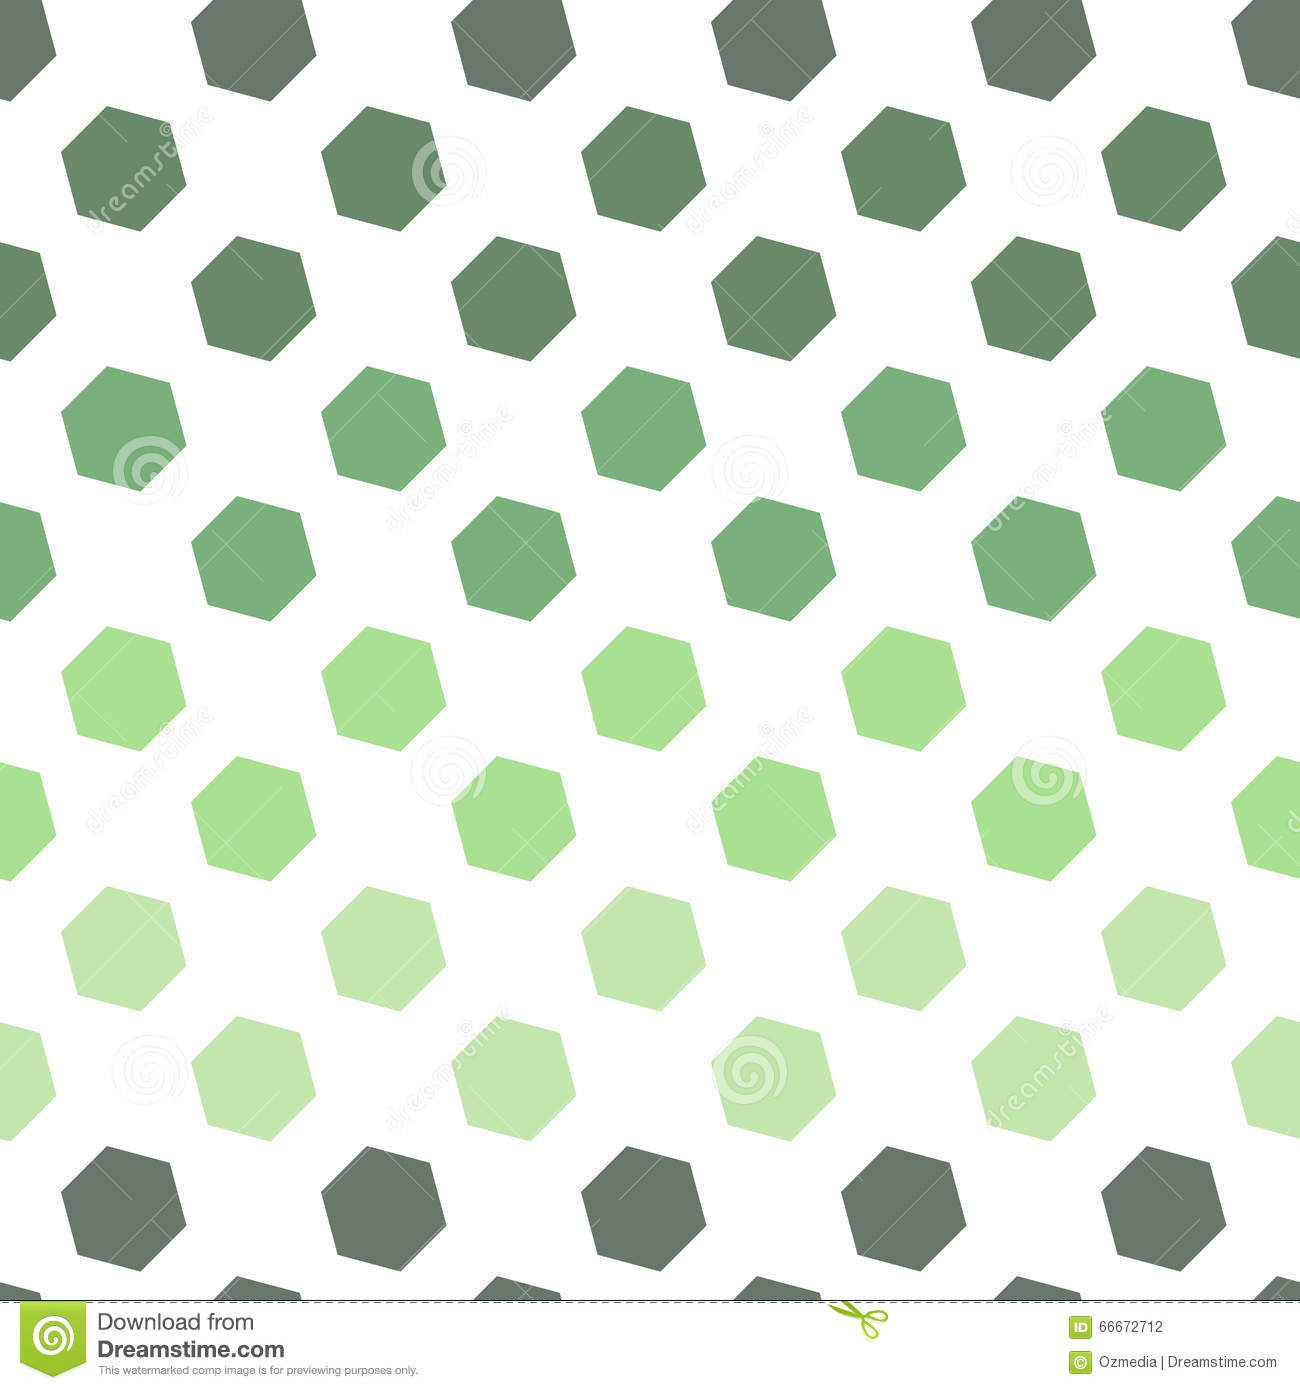 Seamless Geometric Abstract Pattern from Colorful Hexagons